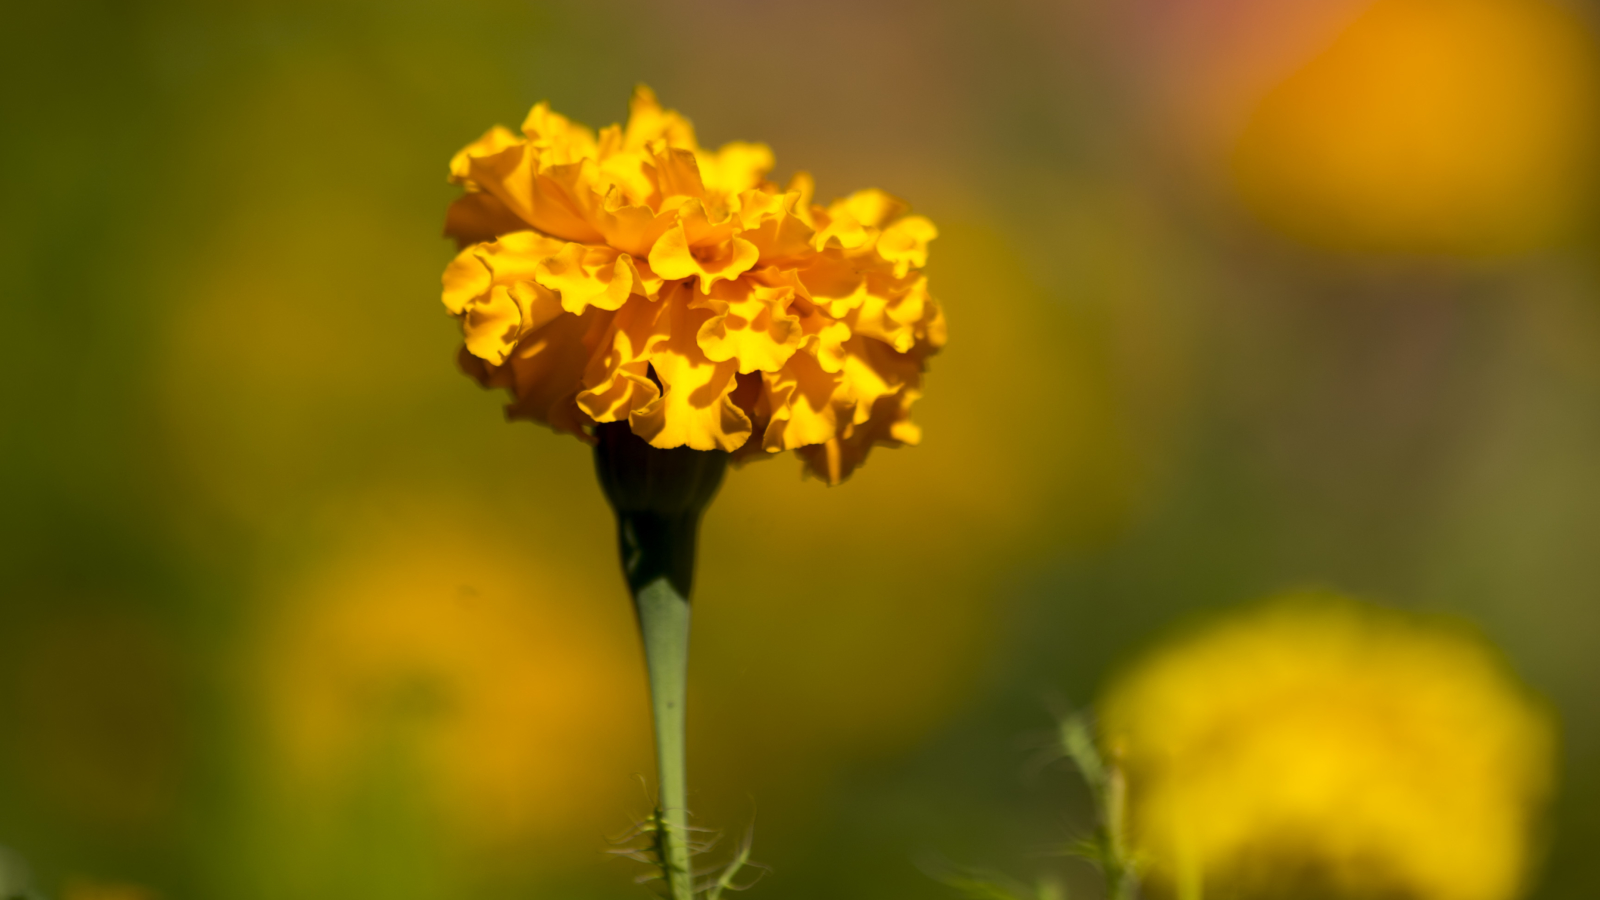 close up of a yellow flower among a bed of flowers